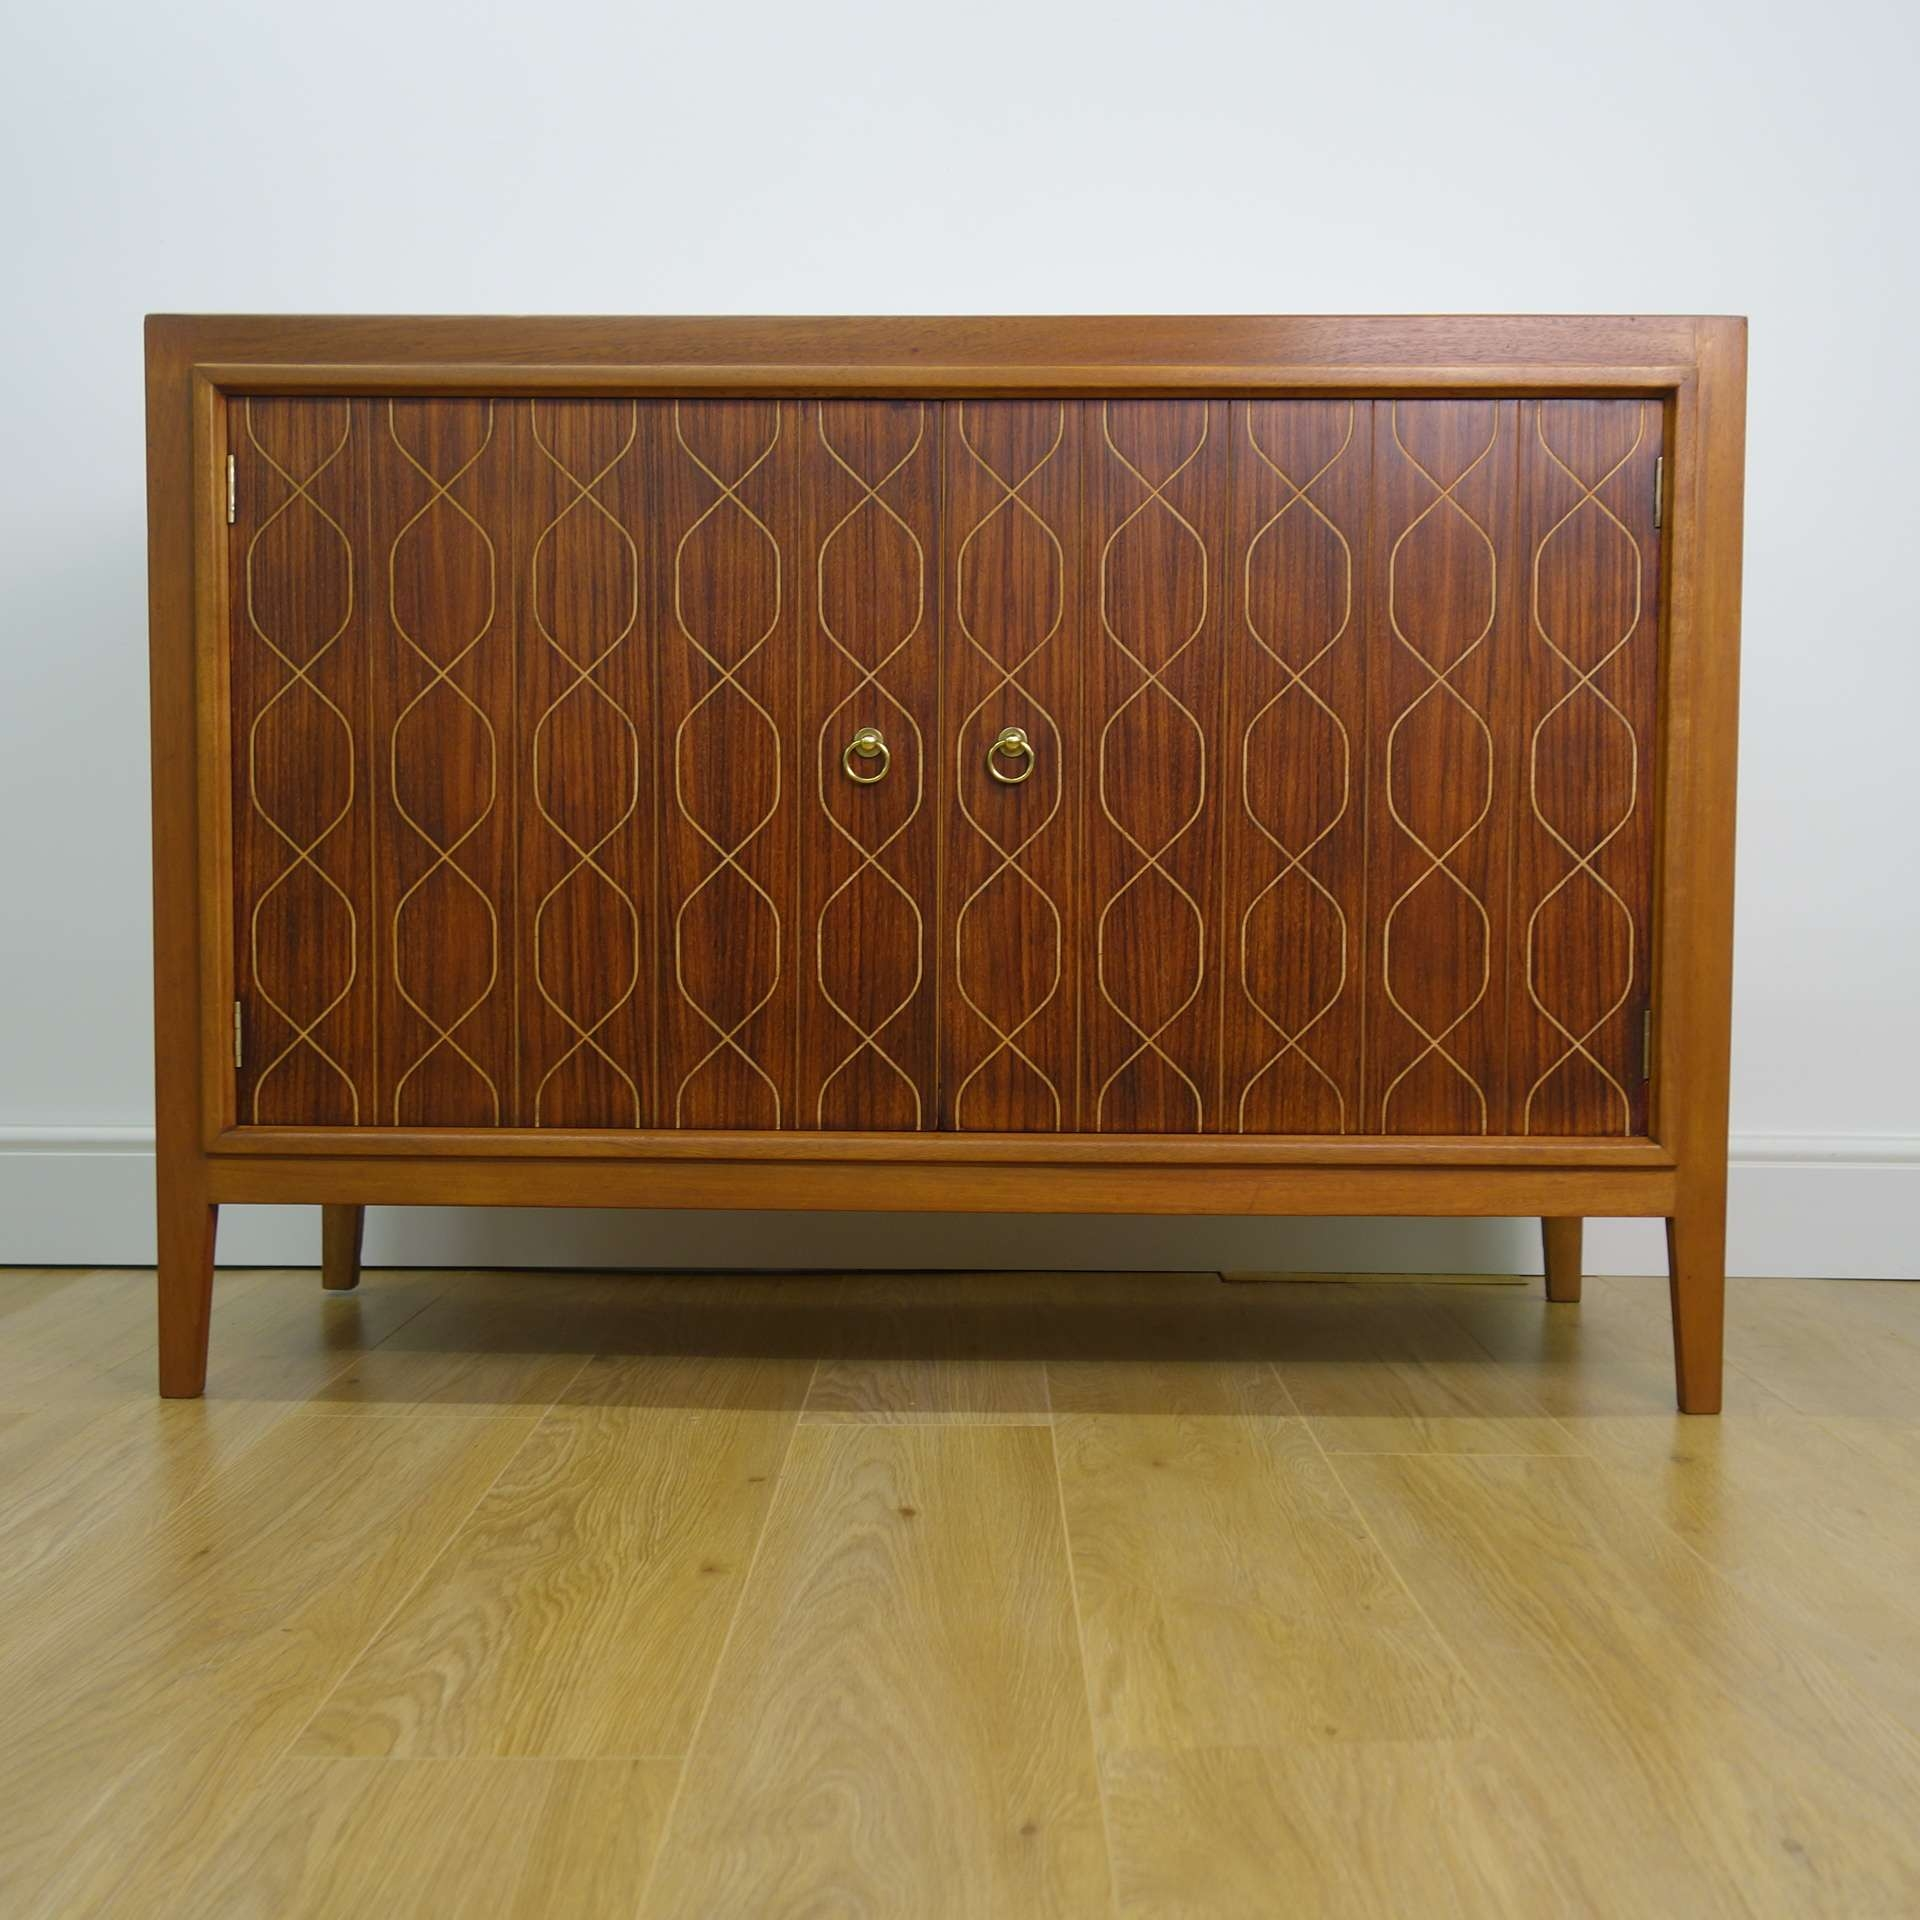 Double Helix Sideboardgordon Russell – Mark Parrish Mid Throughout Gordon Russell Helix Sideboards (View 6 of 20)